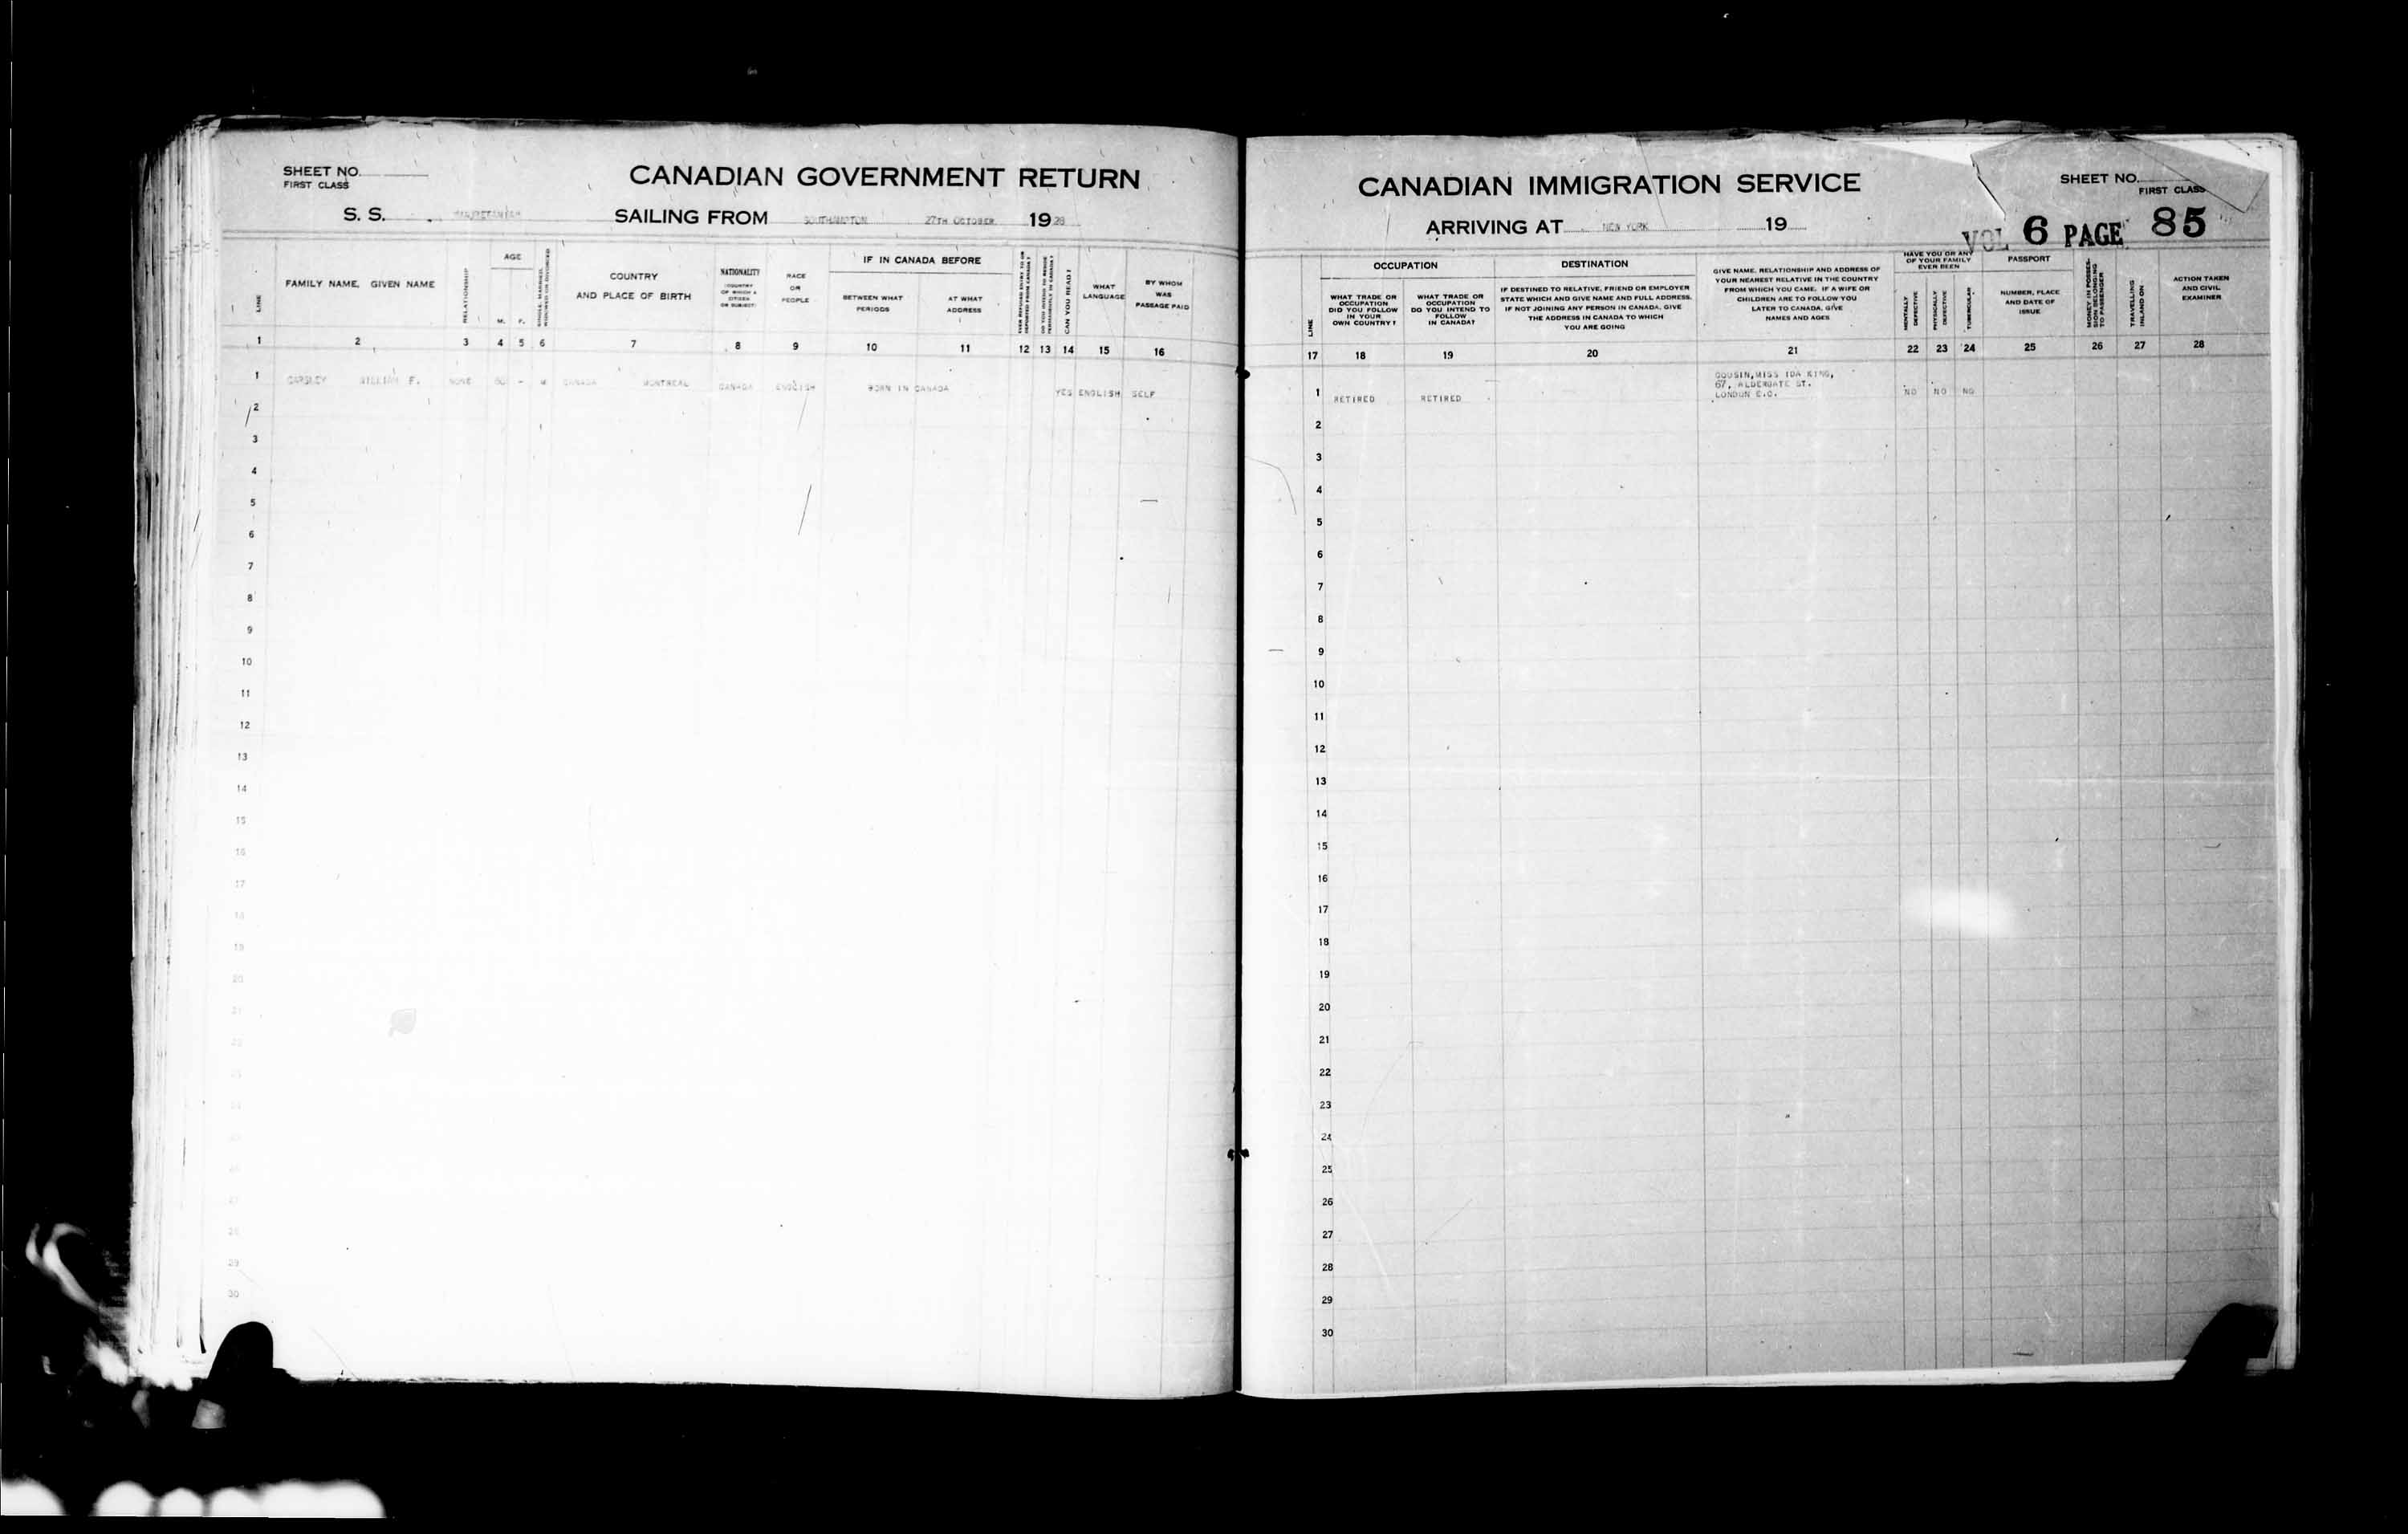 Title: Passenger Lists: New York (1925-1935) - Mikan Number: 161343 - Microform: t-14933